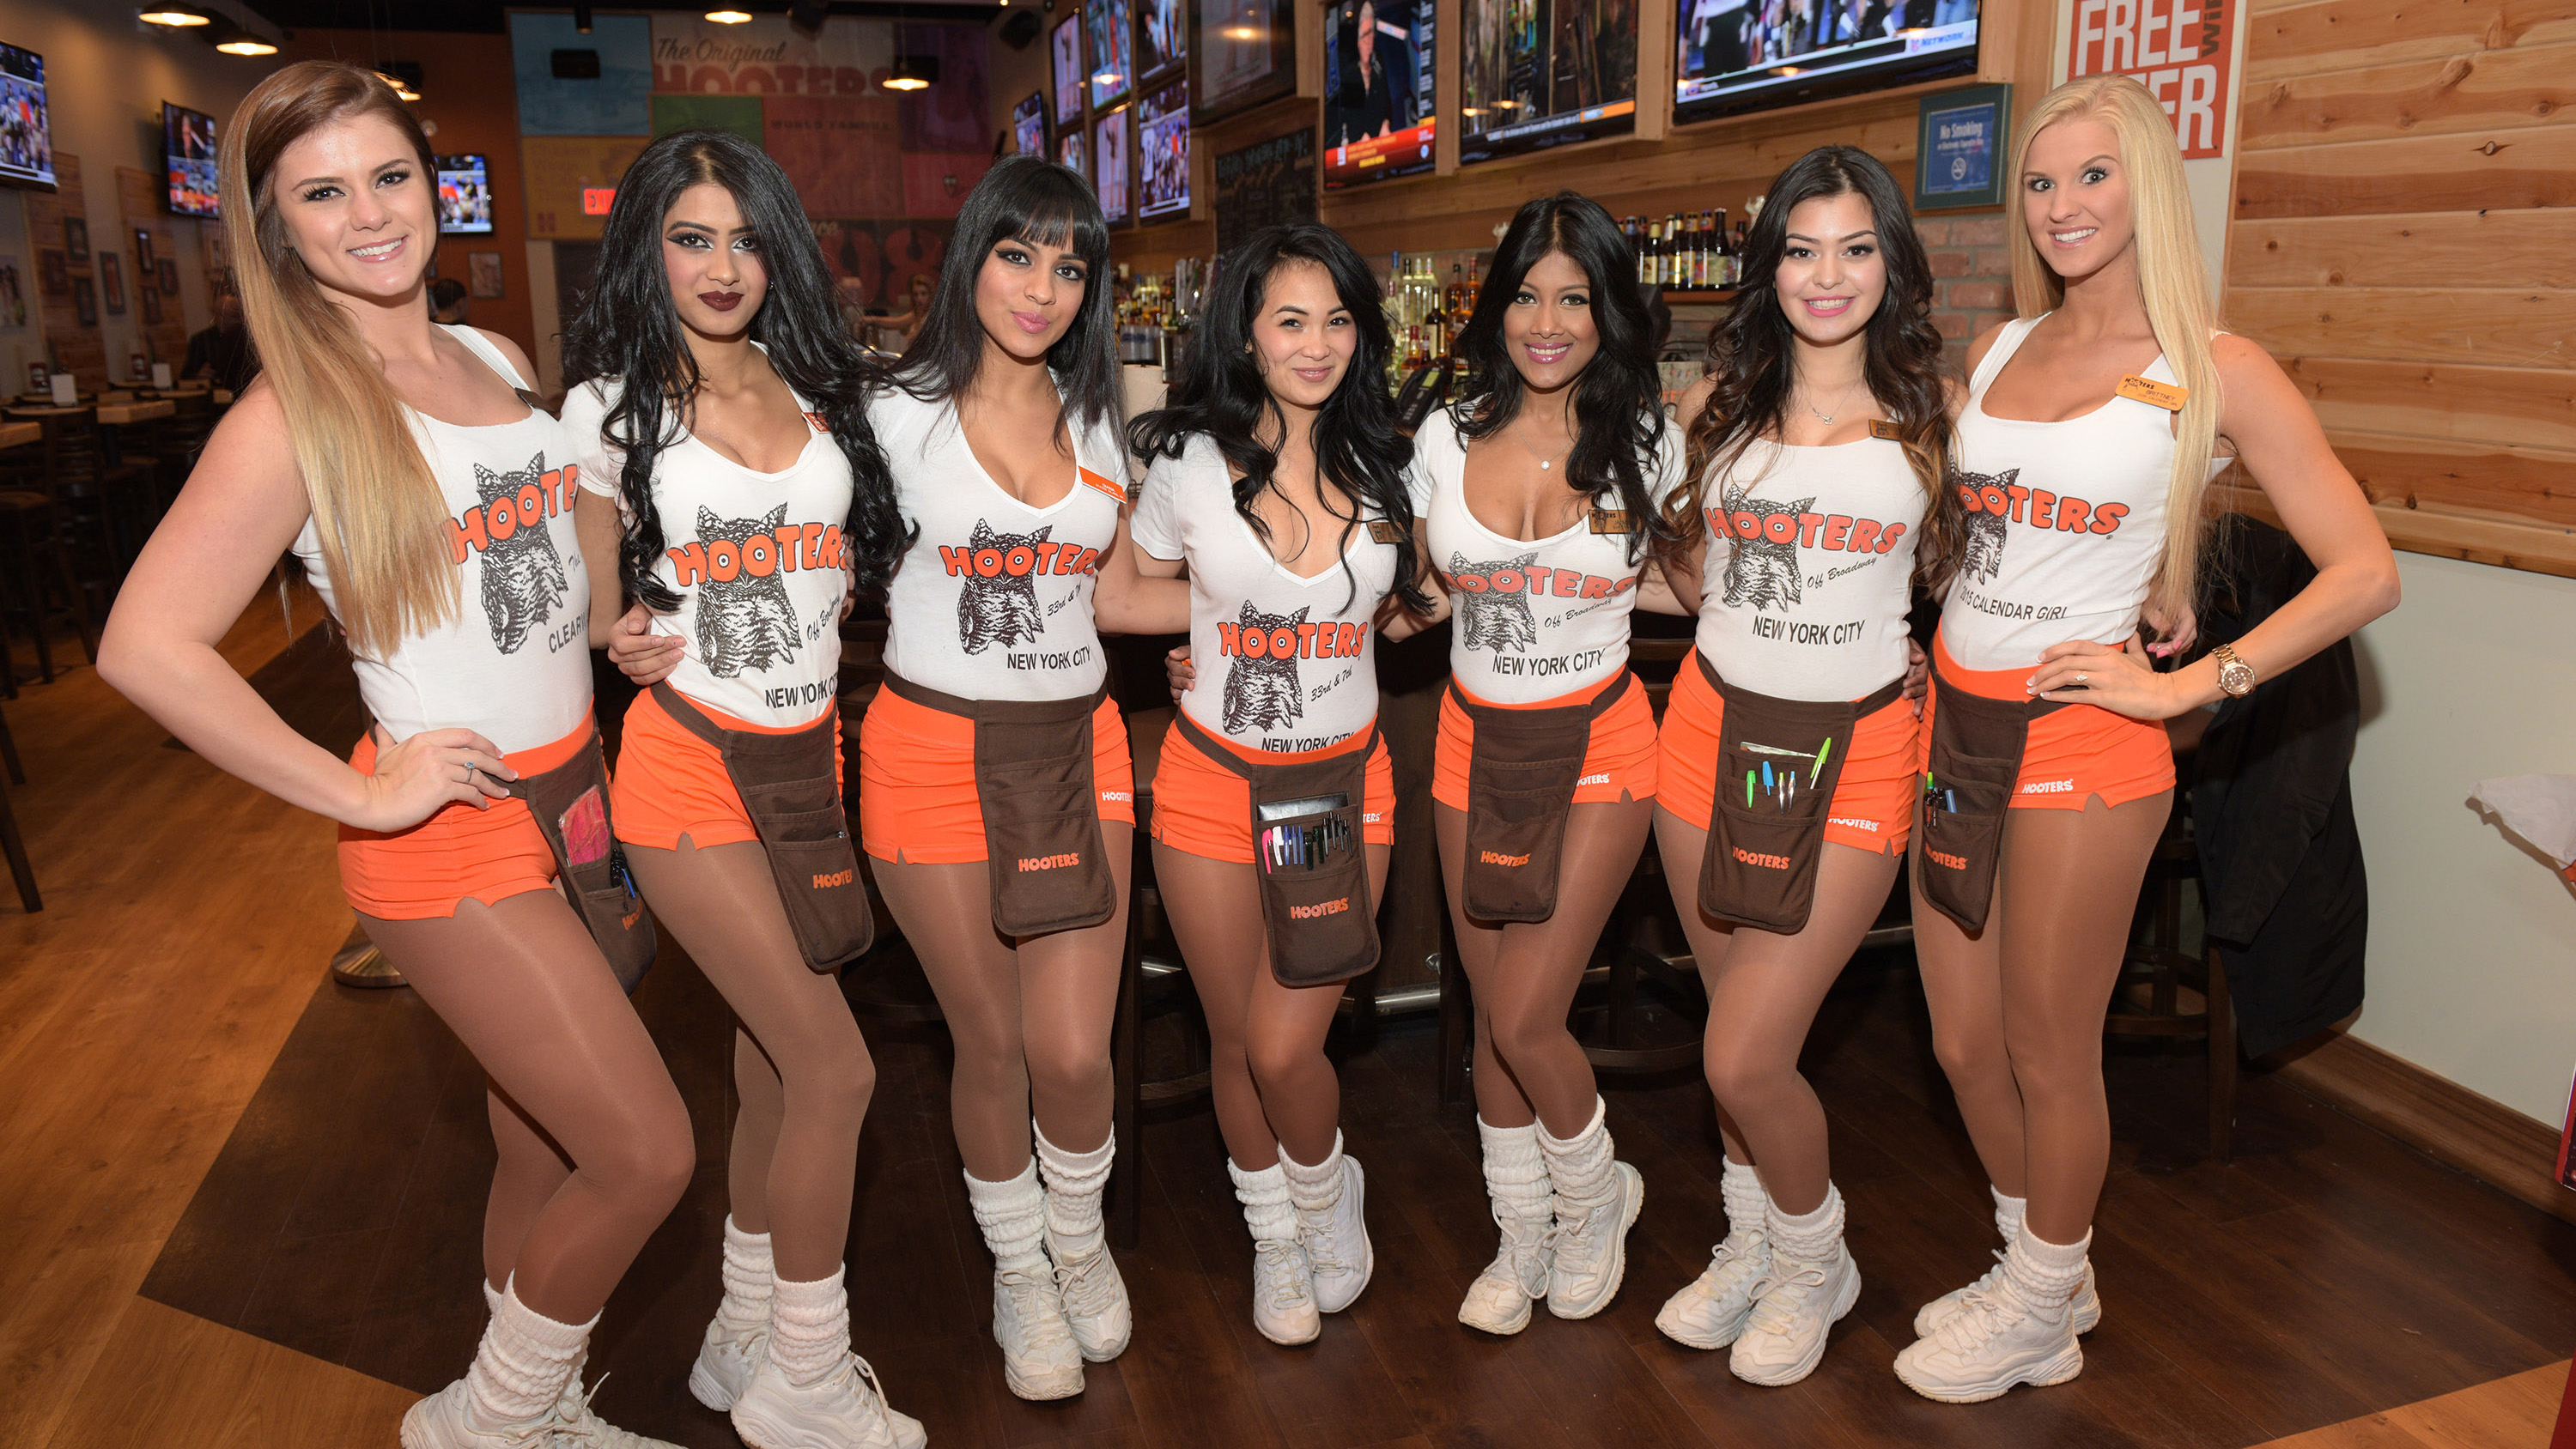 Is Hooters coming to Cambodia?